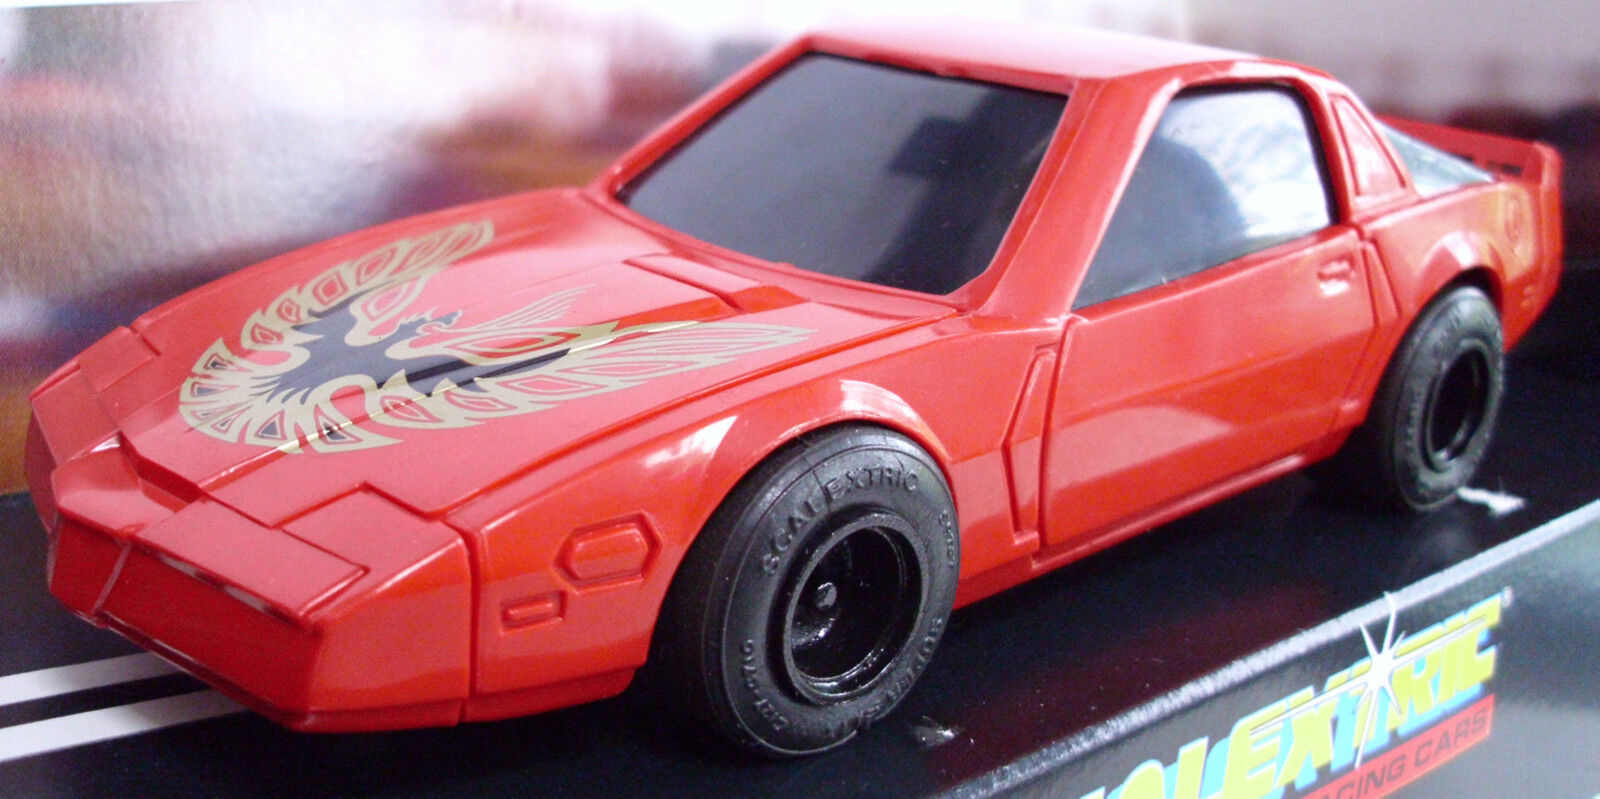 Scalextric C250 Pontiac Firebird - Red - Rare Car - Mint Boxed